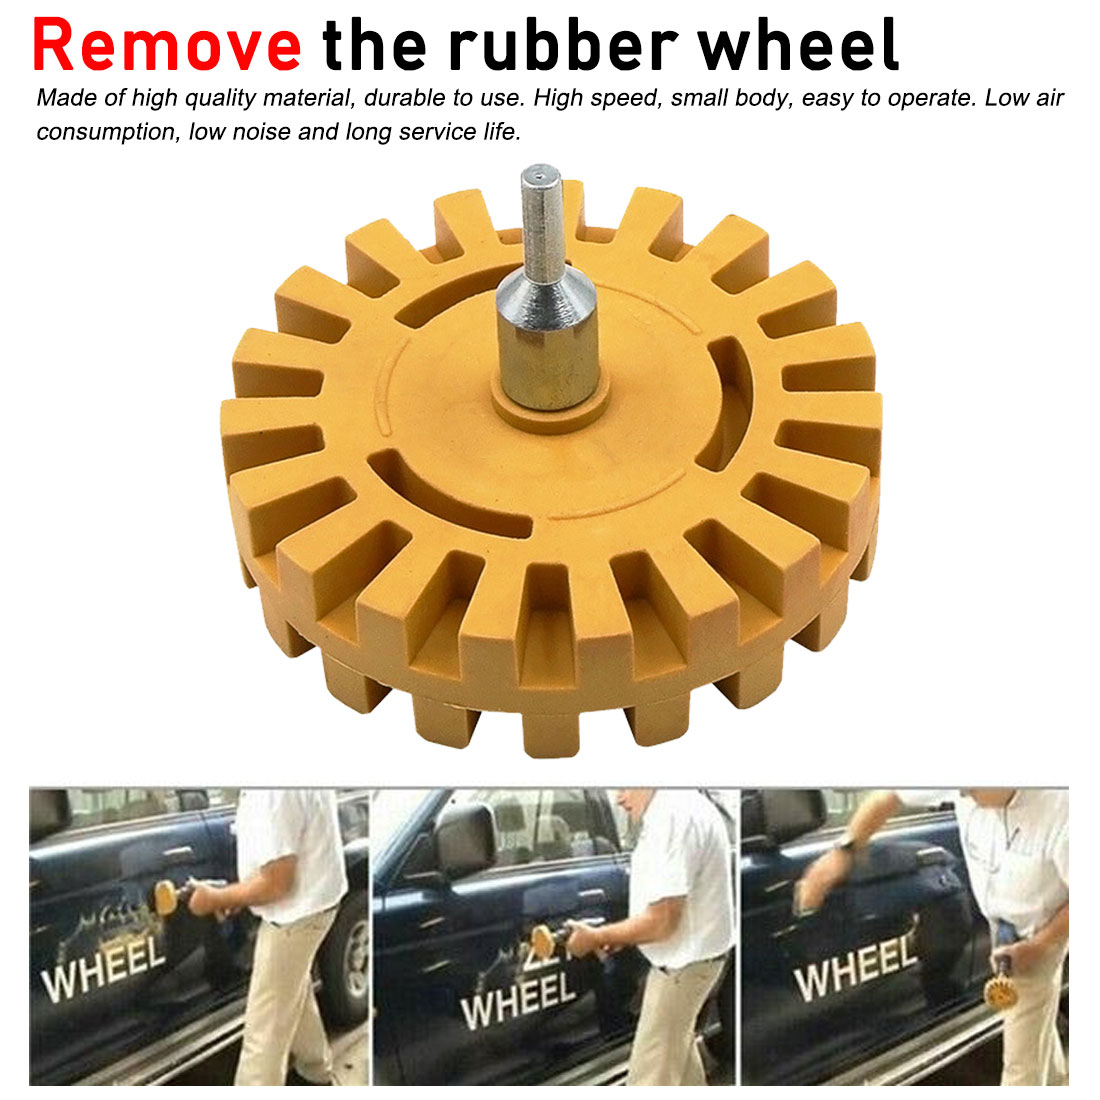 <font><b>Car</b></font> Sticker Remover Tools Quick Polishing Rubber <font><b>Disk</b></font> Pneumatic Polishing <font><b>Wheel</b></font> Decal Remover Rubber Eraser <font><b>Wheel</b></font> image